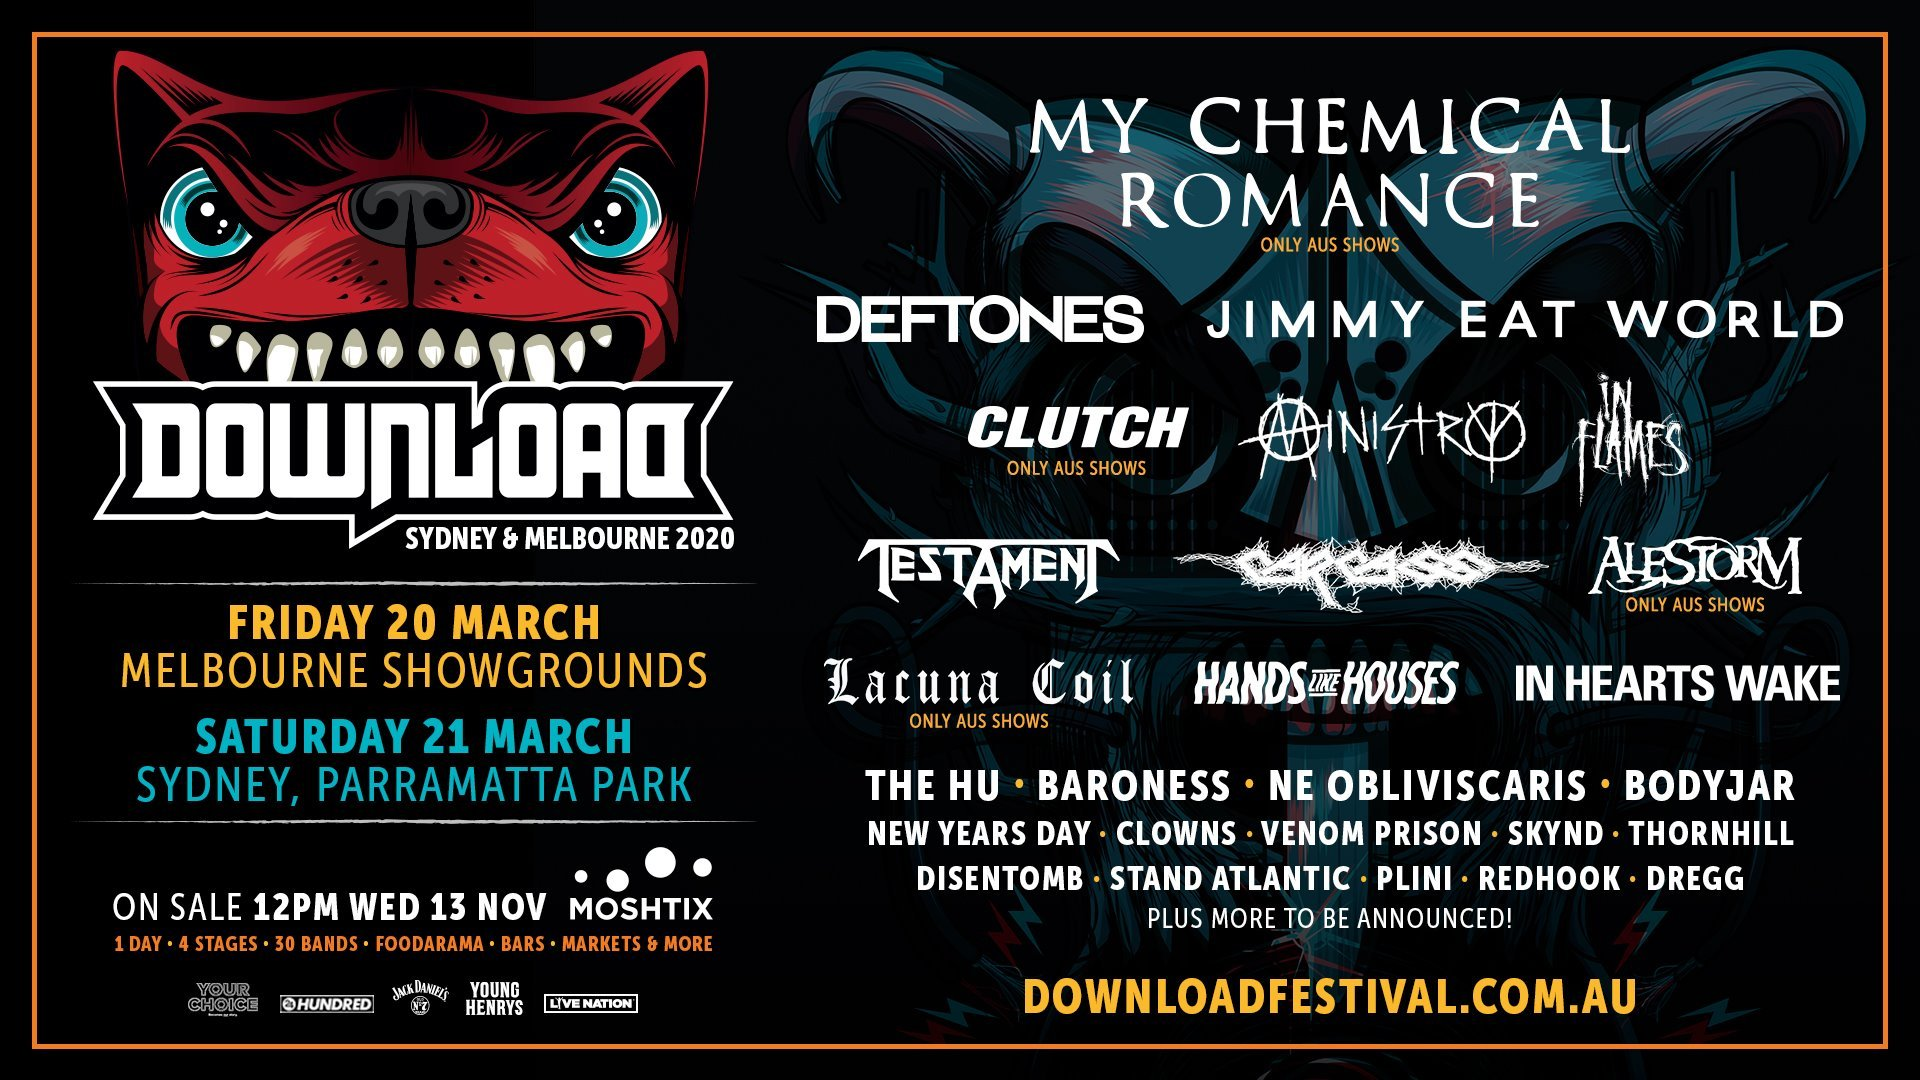 Download Festival 2020.Download Australia 2020 Headliners Are My Chemical Romance